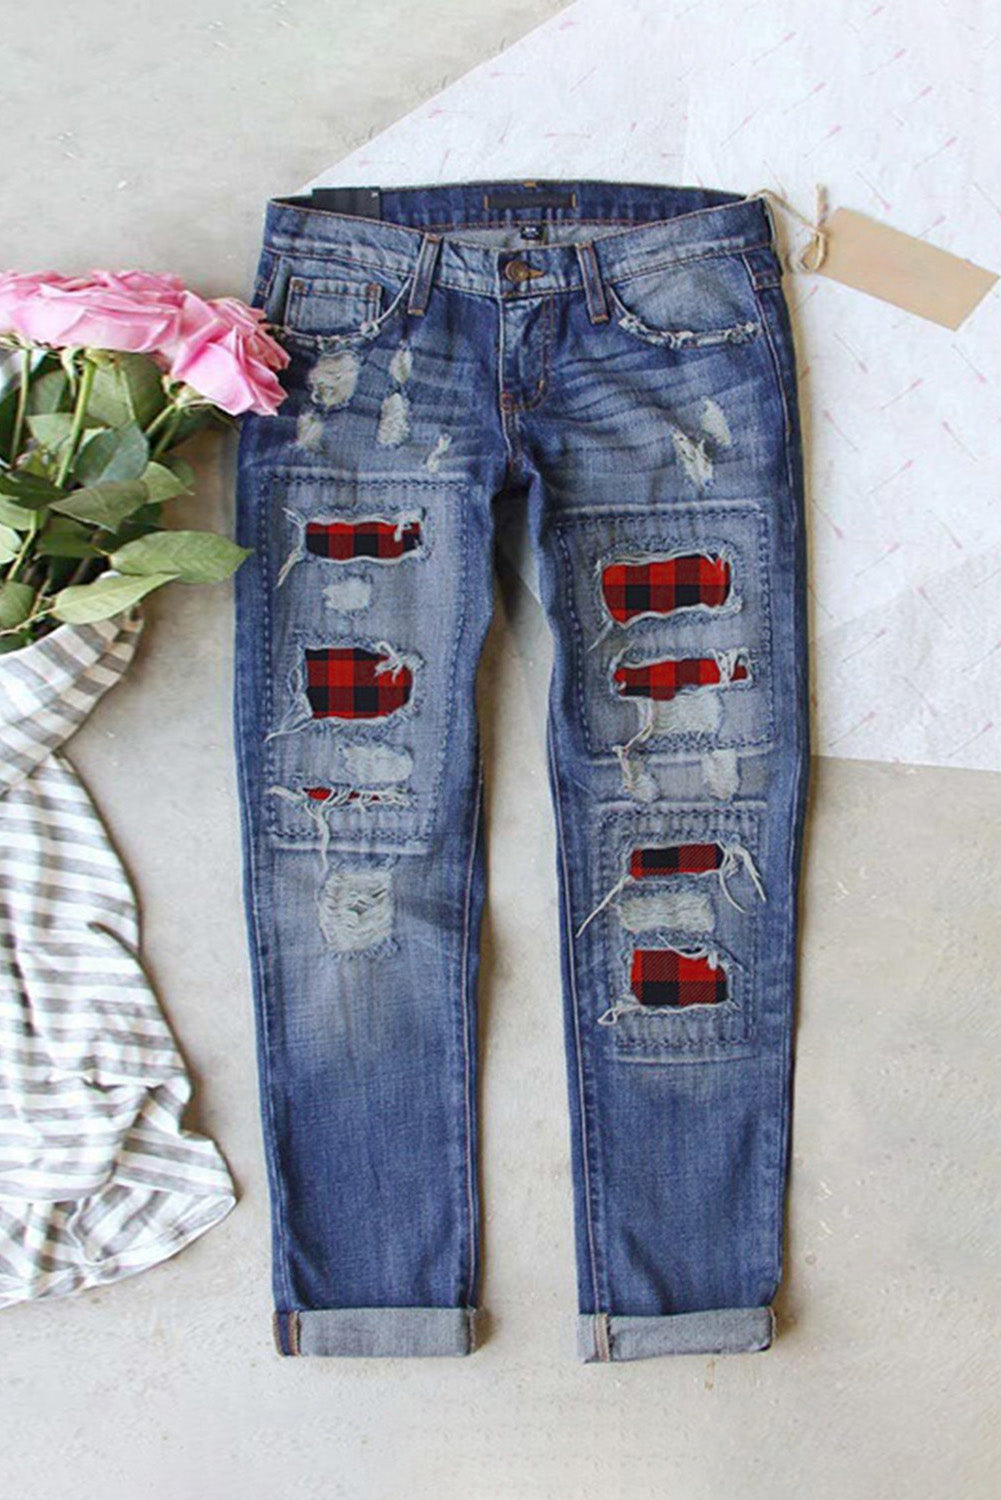 Buffalo Plaid Patches Distressed Straight Jeans Jeans Discount Designer Fashion Clothes Shoes Bags Women Men Kids Children Black Owned Business